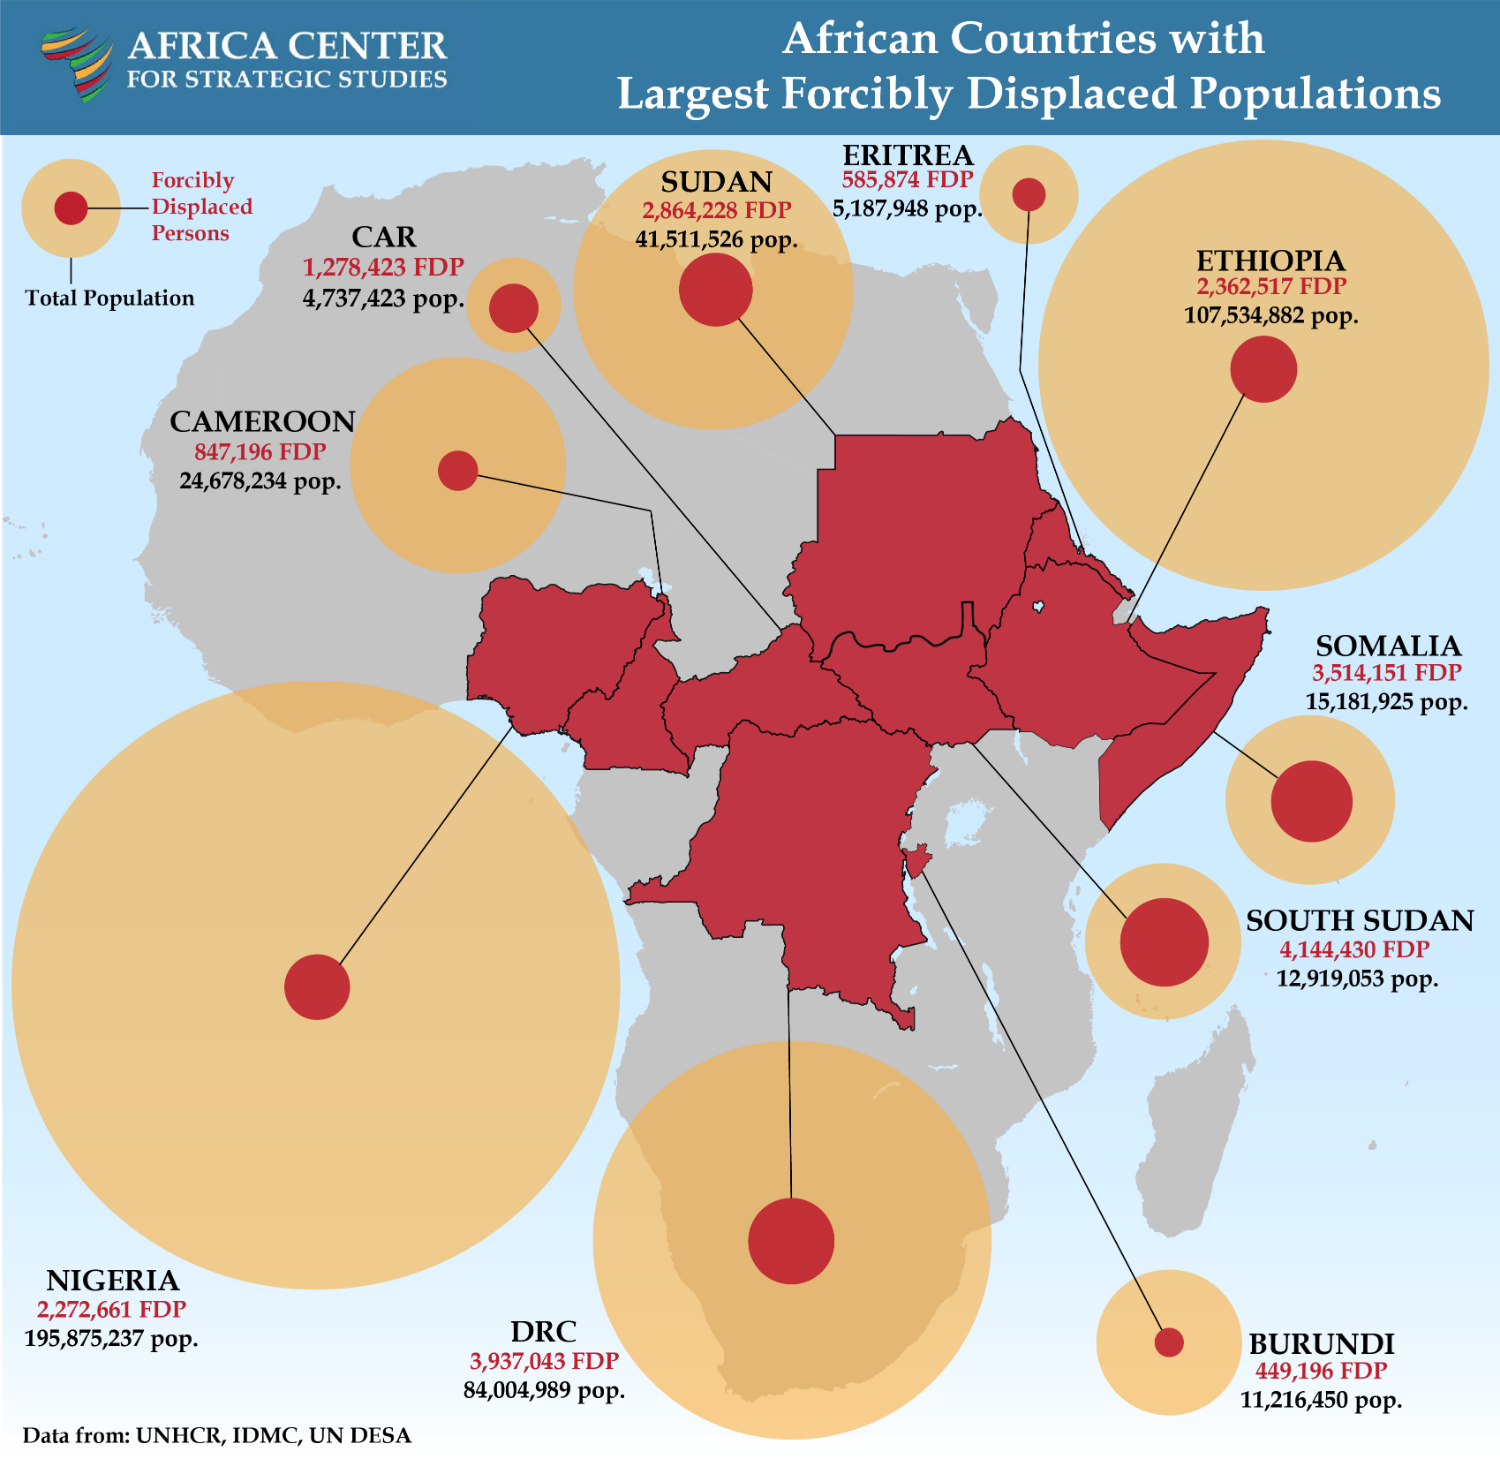 African Countries with Largest Forcibly Displaced Populations